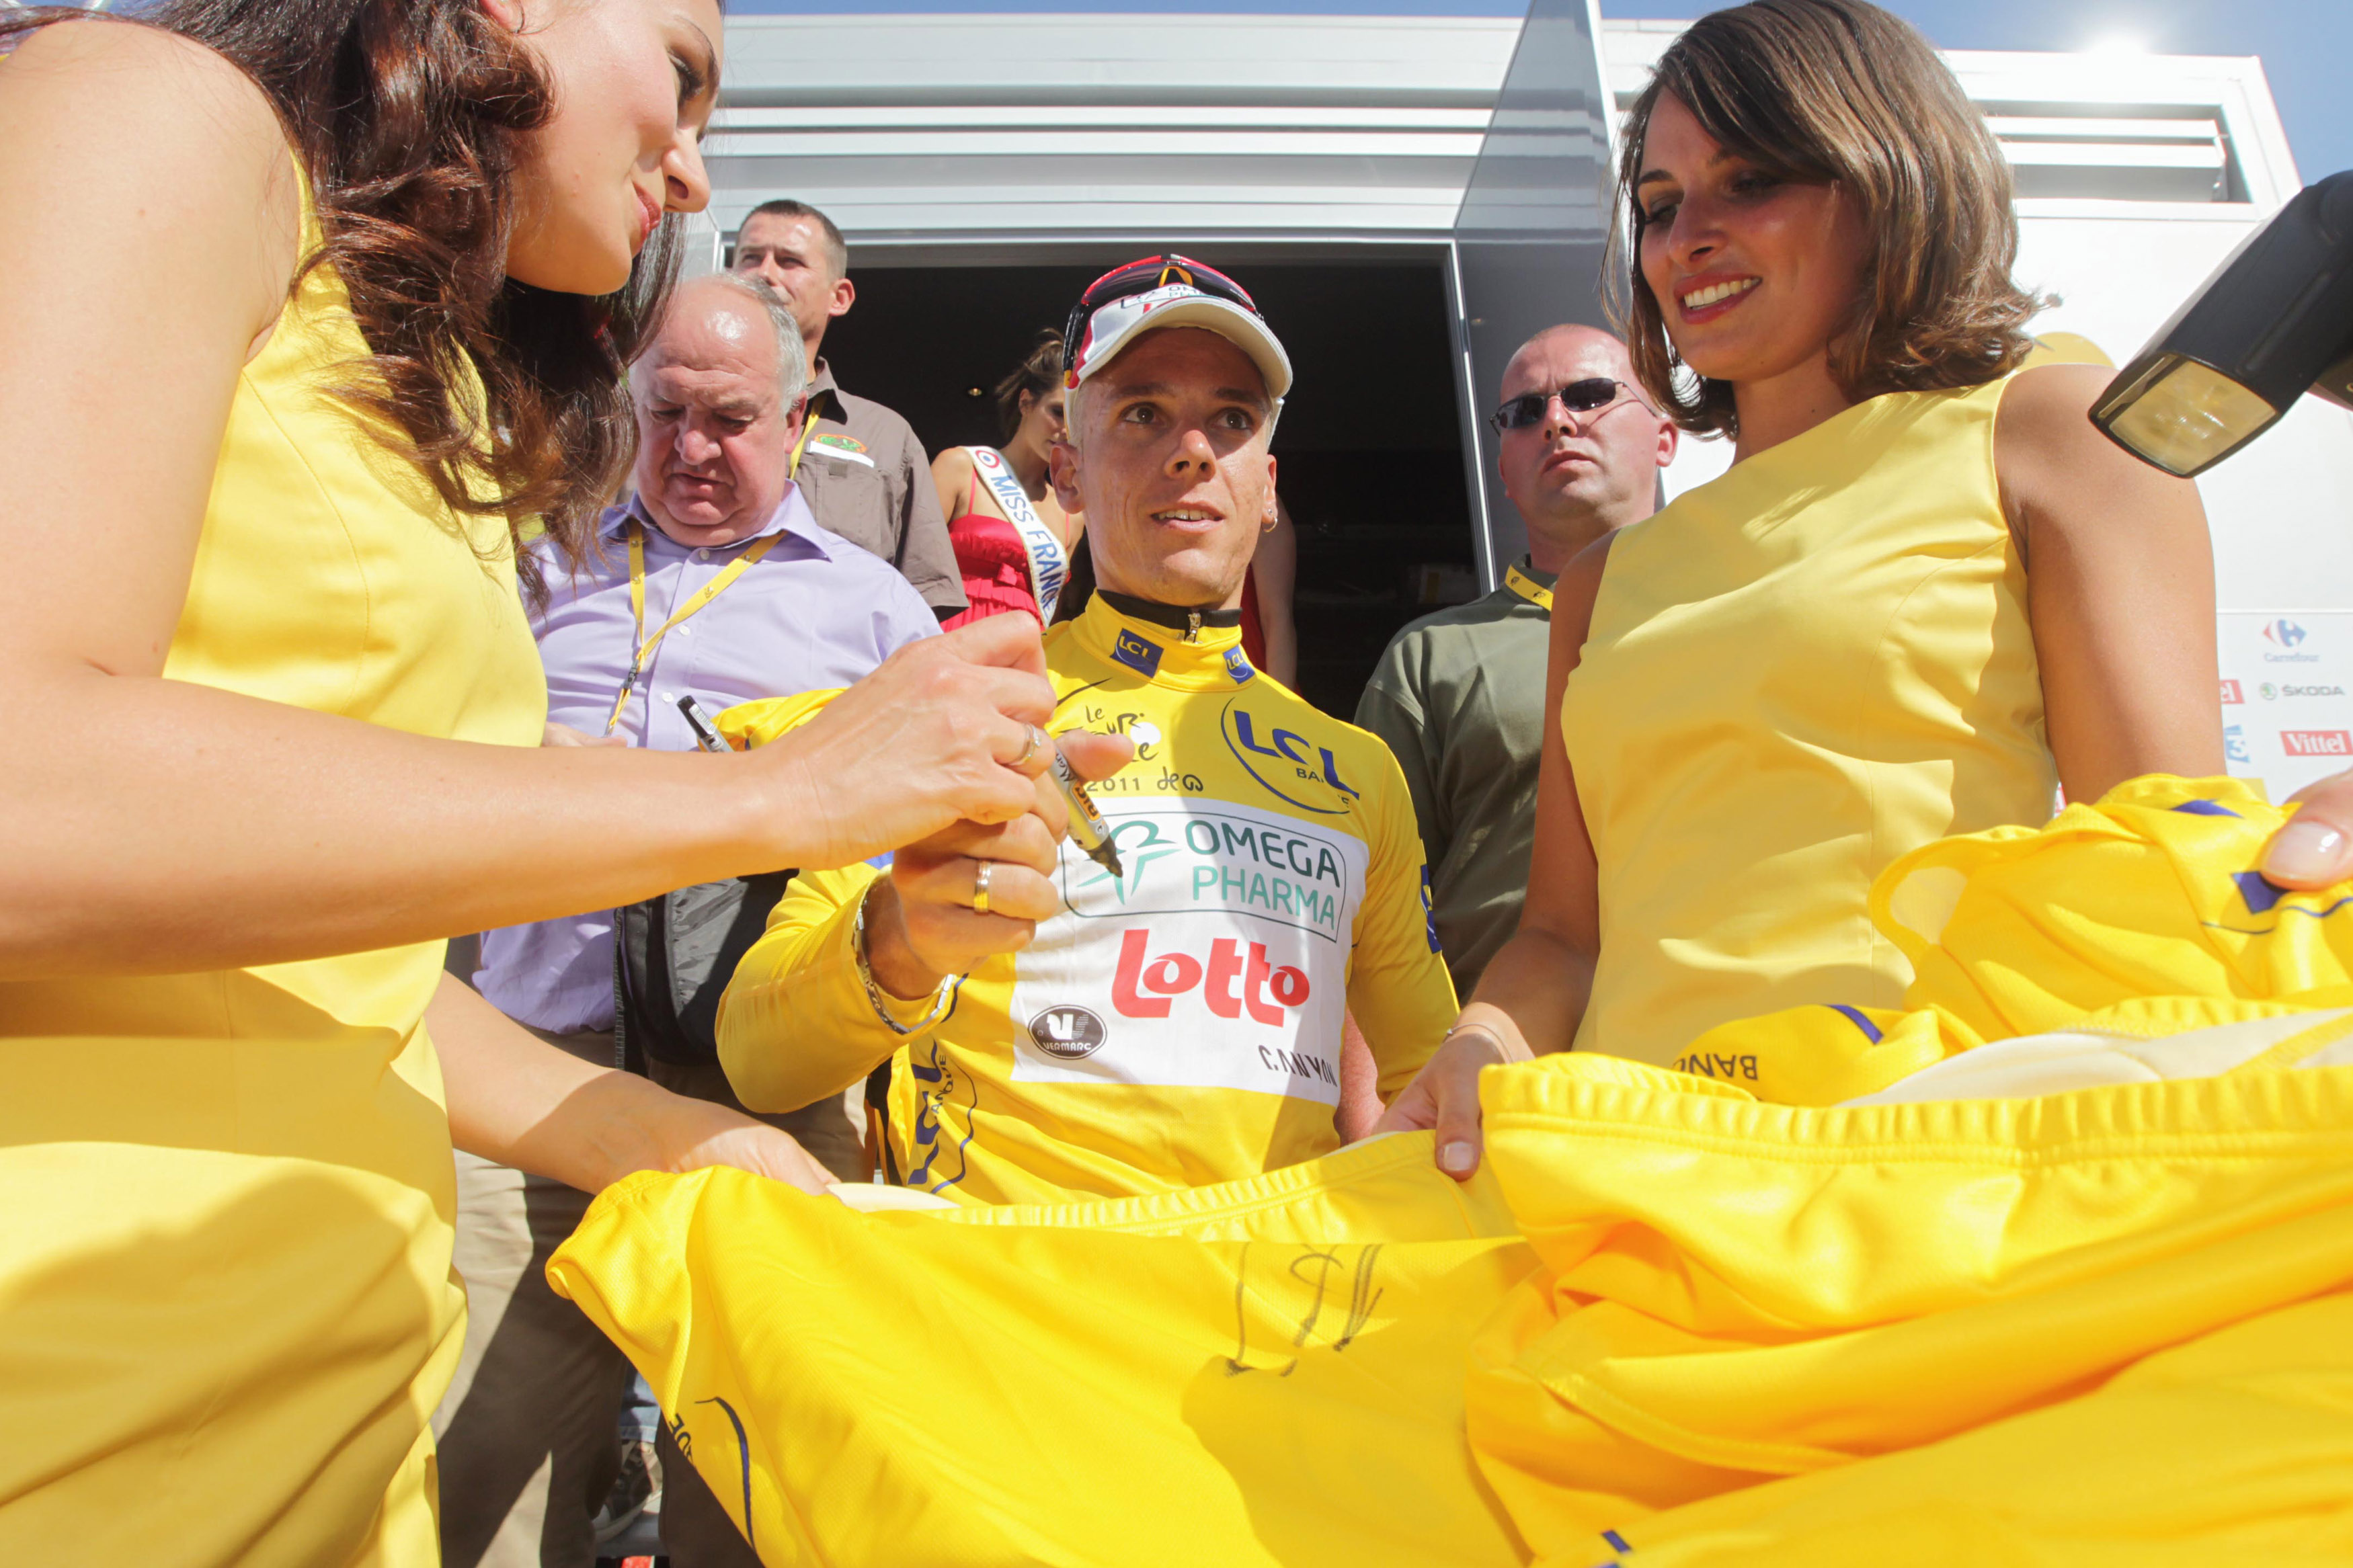 Philippe Gilbert in the yellow jersey at the 2011 Tour de France